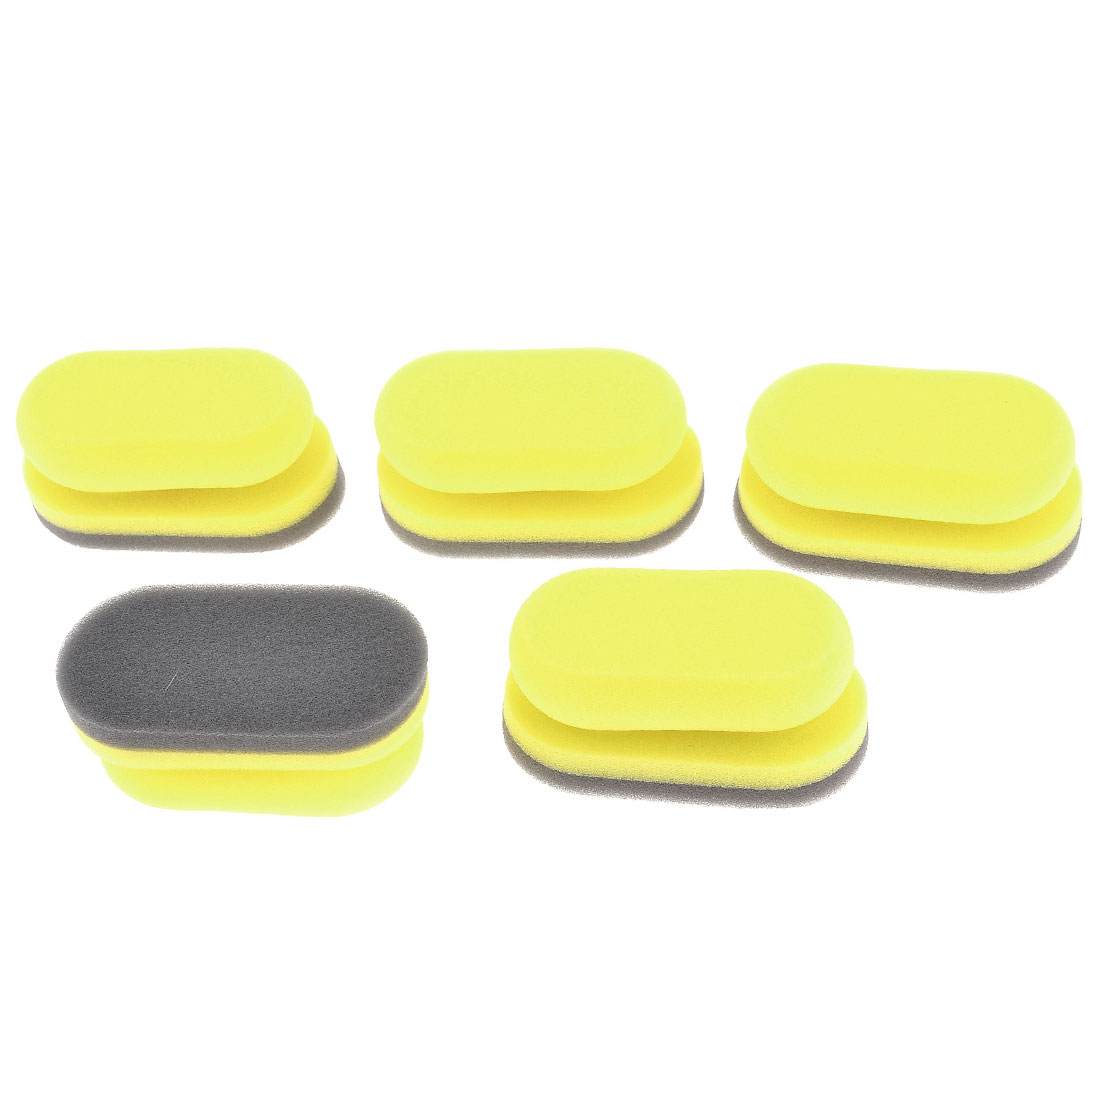 Car Wash Cleaning Pad Soft and Smooth Sponge Cushion for Car Wash (pack of 5)